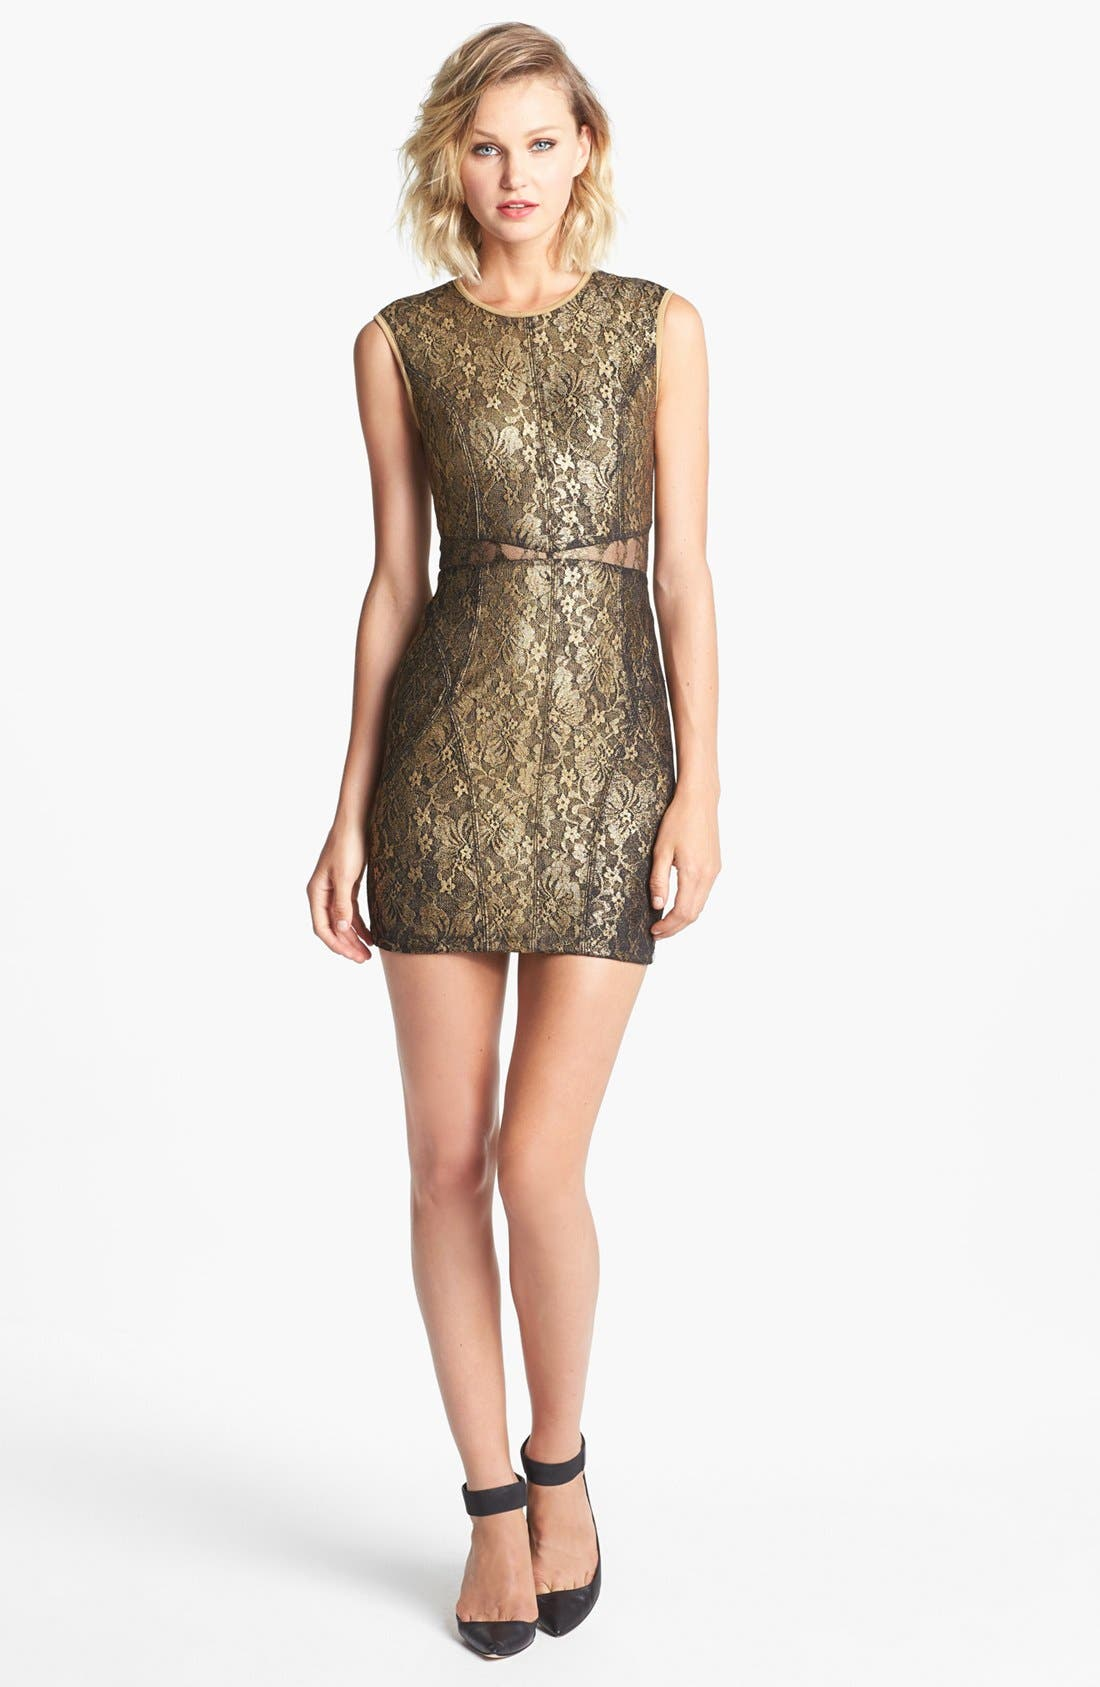 Main Image - Keepsake the label 'Stand by Me' Lace Body-Con Dress